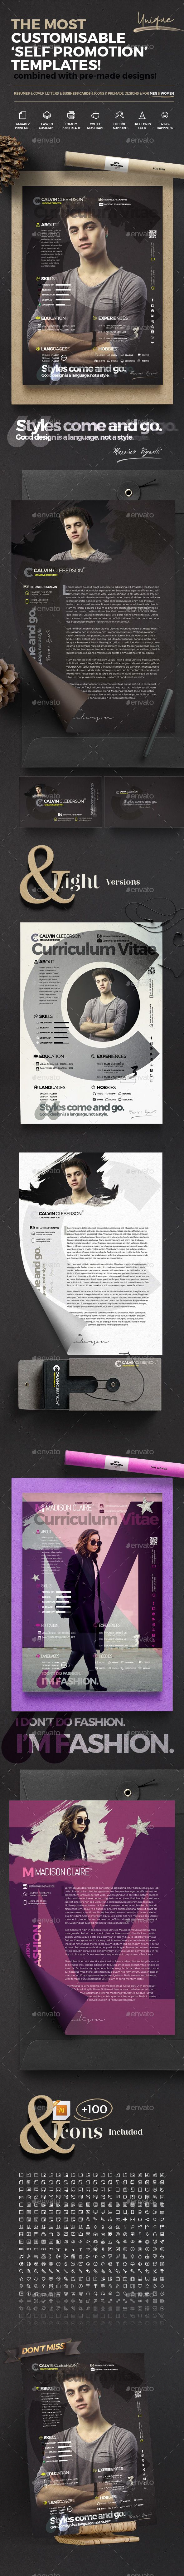 The Curriculum Vitae - Self Promotion Templates - #Resumes Stationery